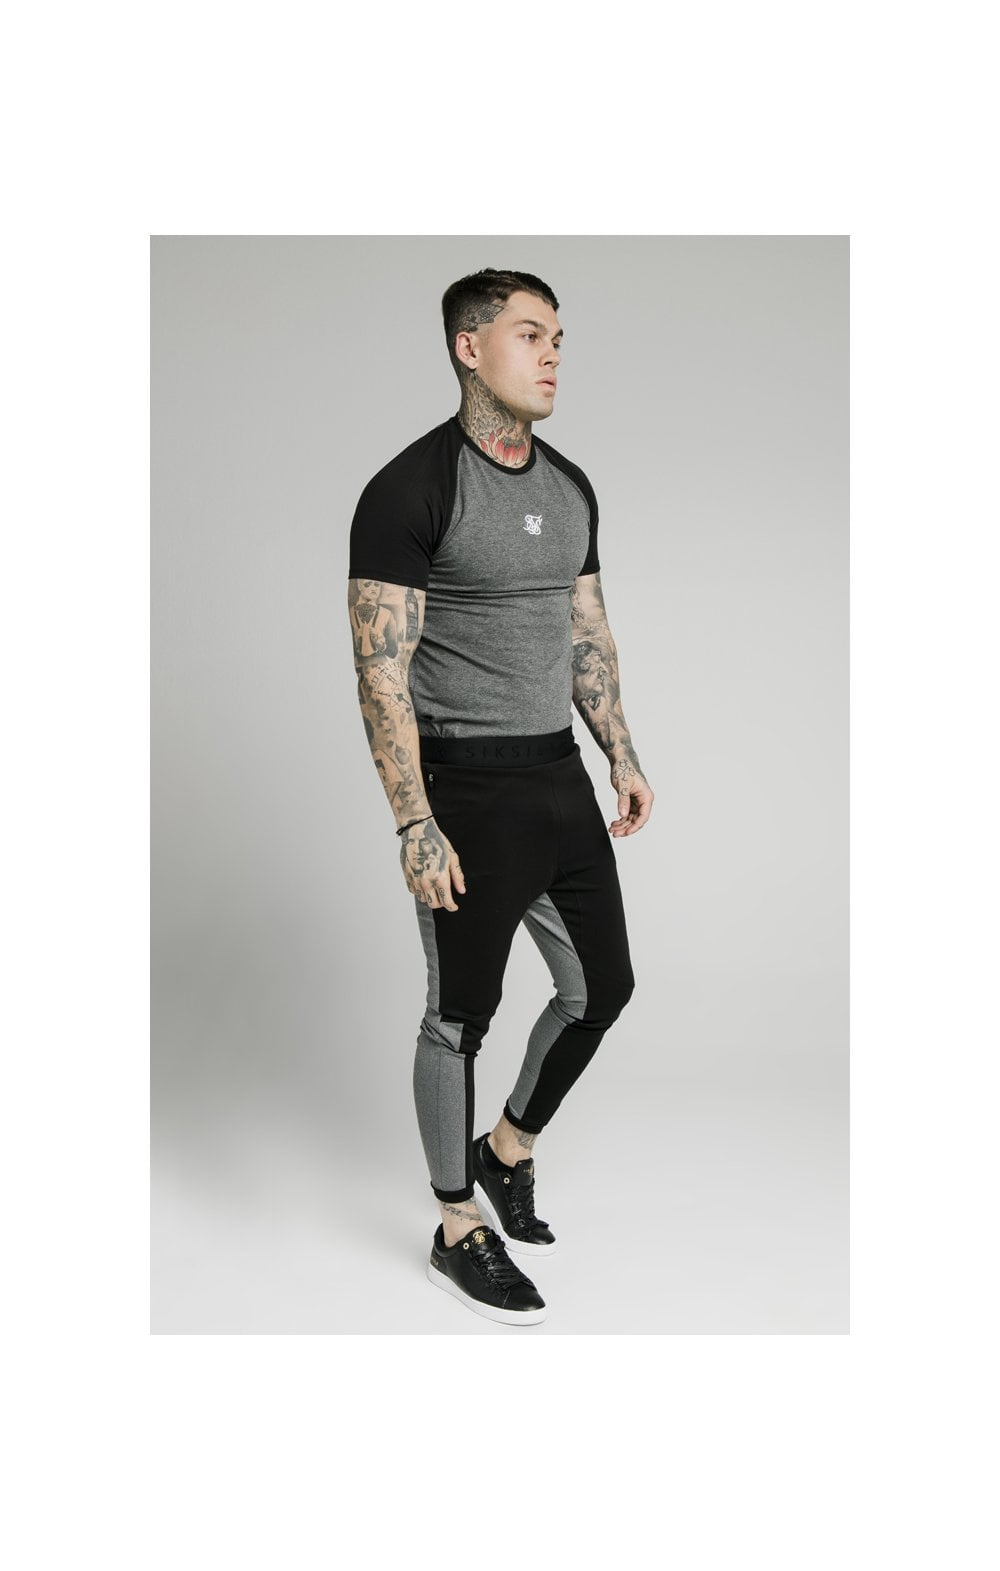 SikSilk Endurance Gym Tee - Black & Grey (4)